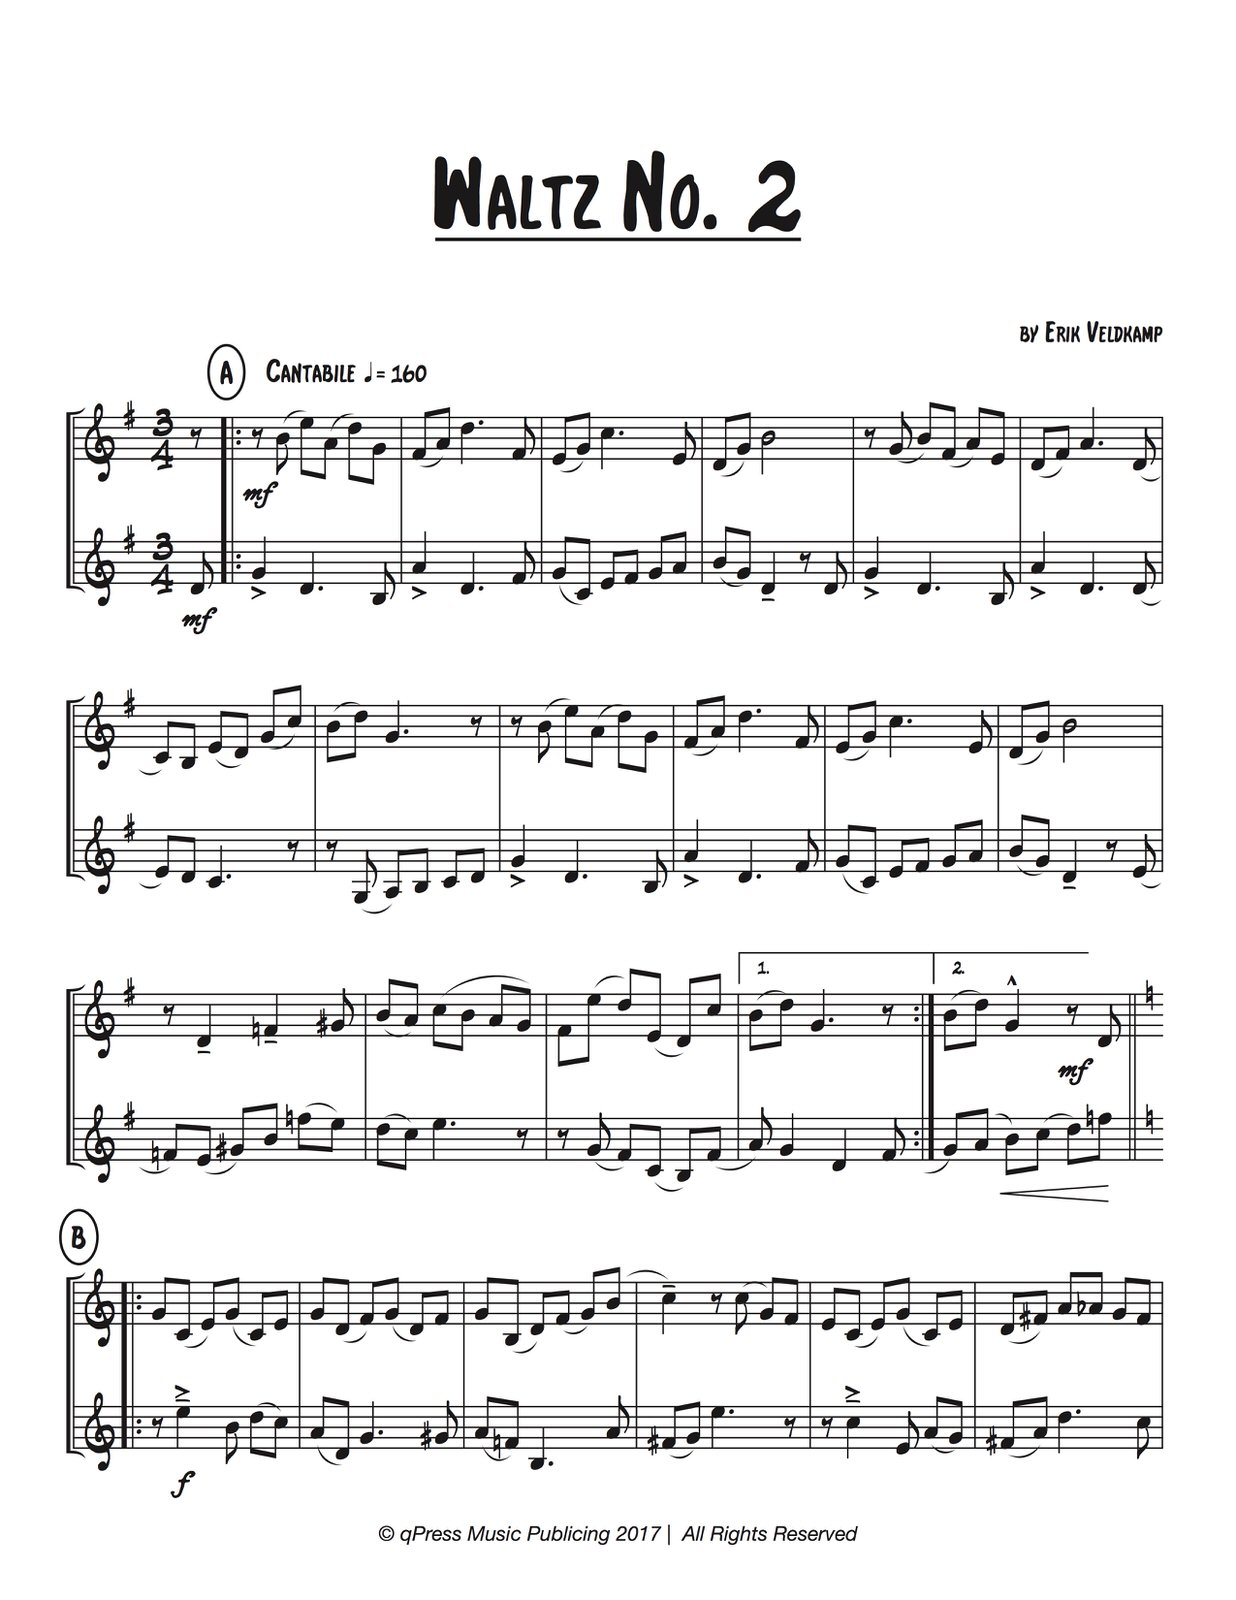 Veldkamp, Six Waltzing Duets for Two Trumpet-p06